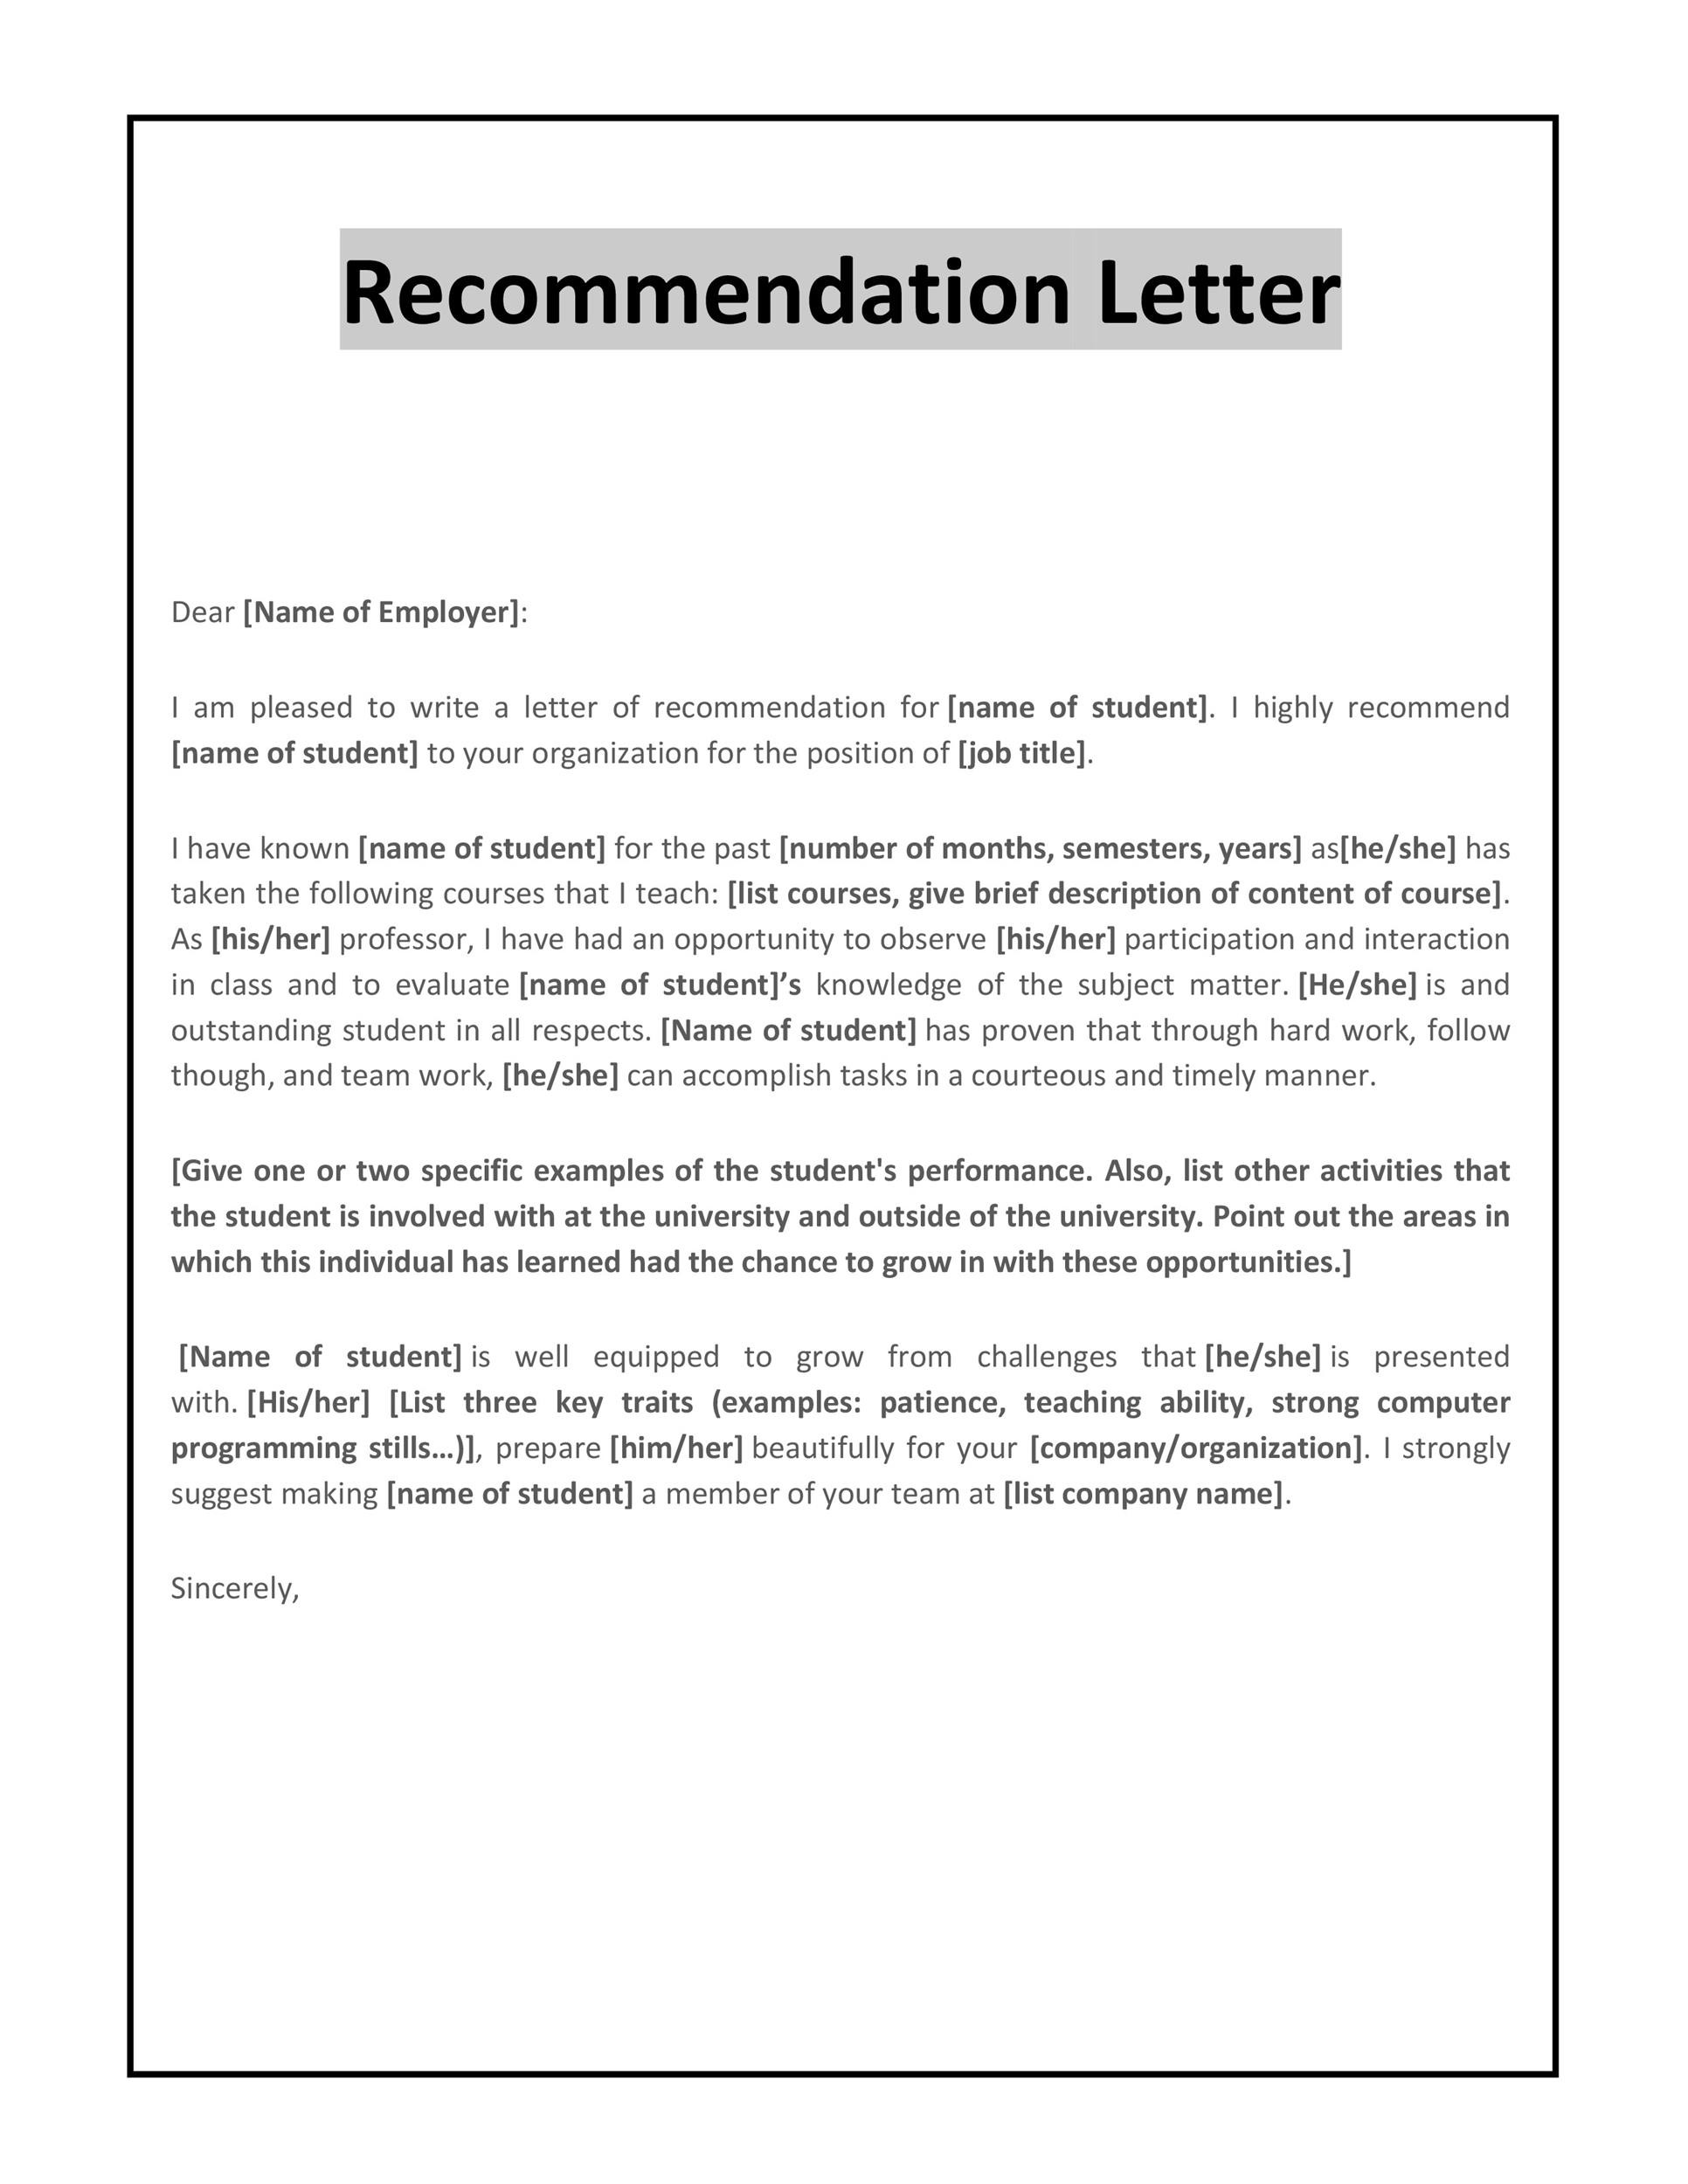 43 FREE Letter of Recommendation Templates & Samples